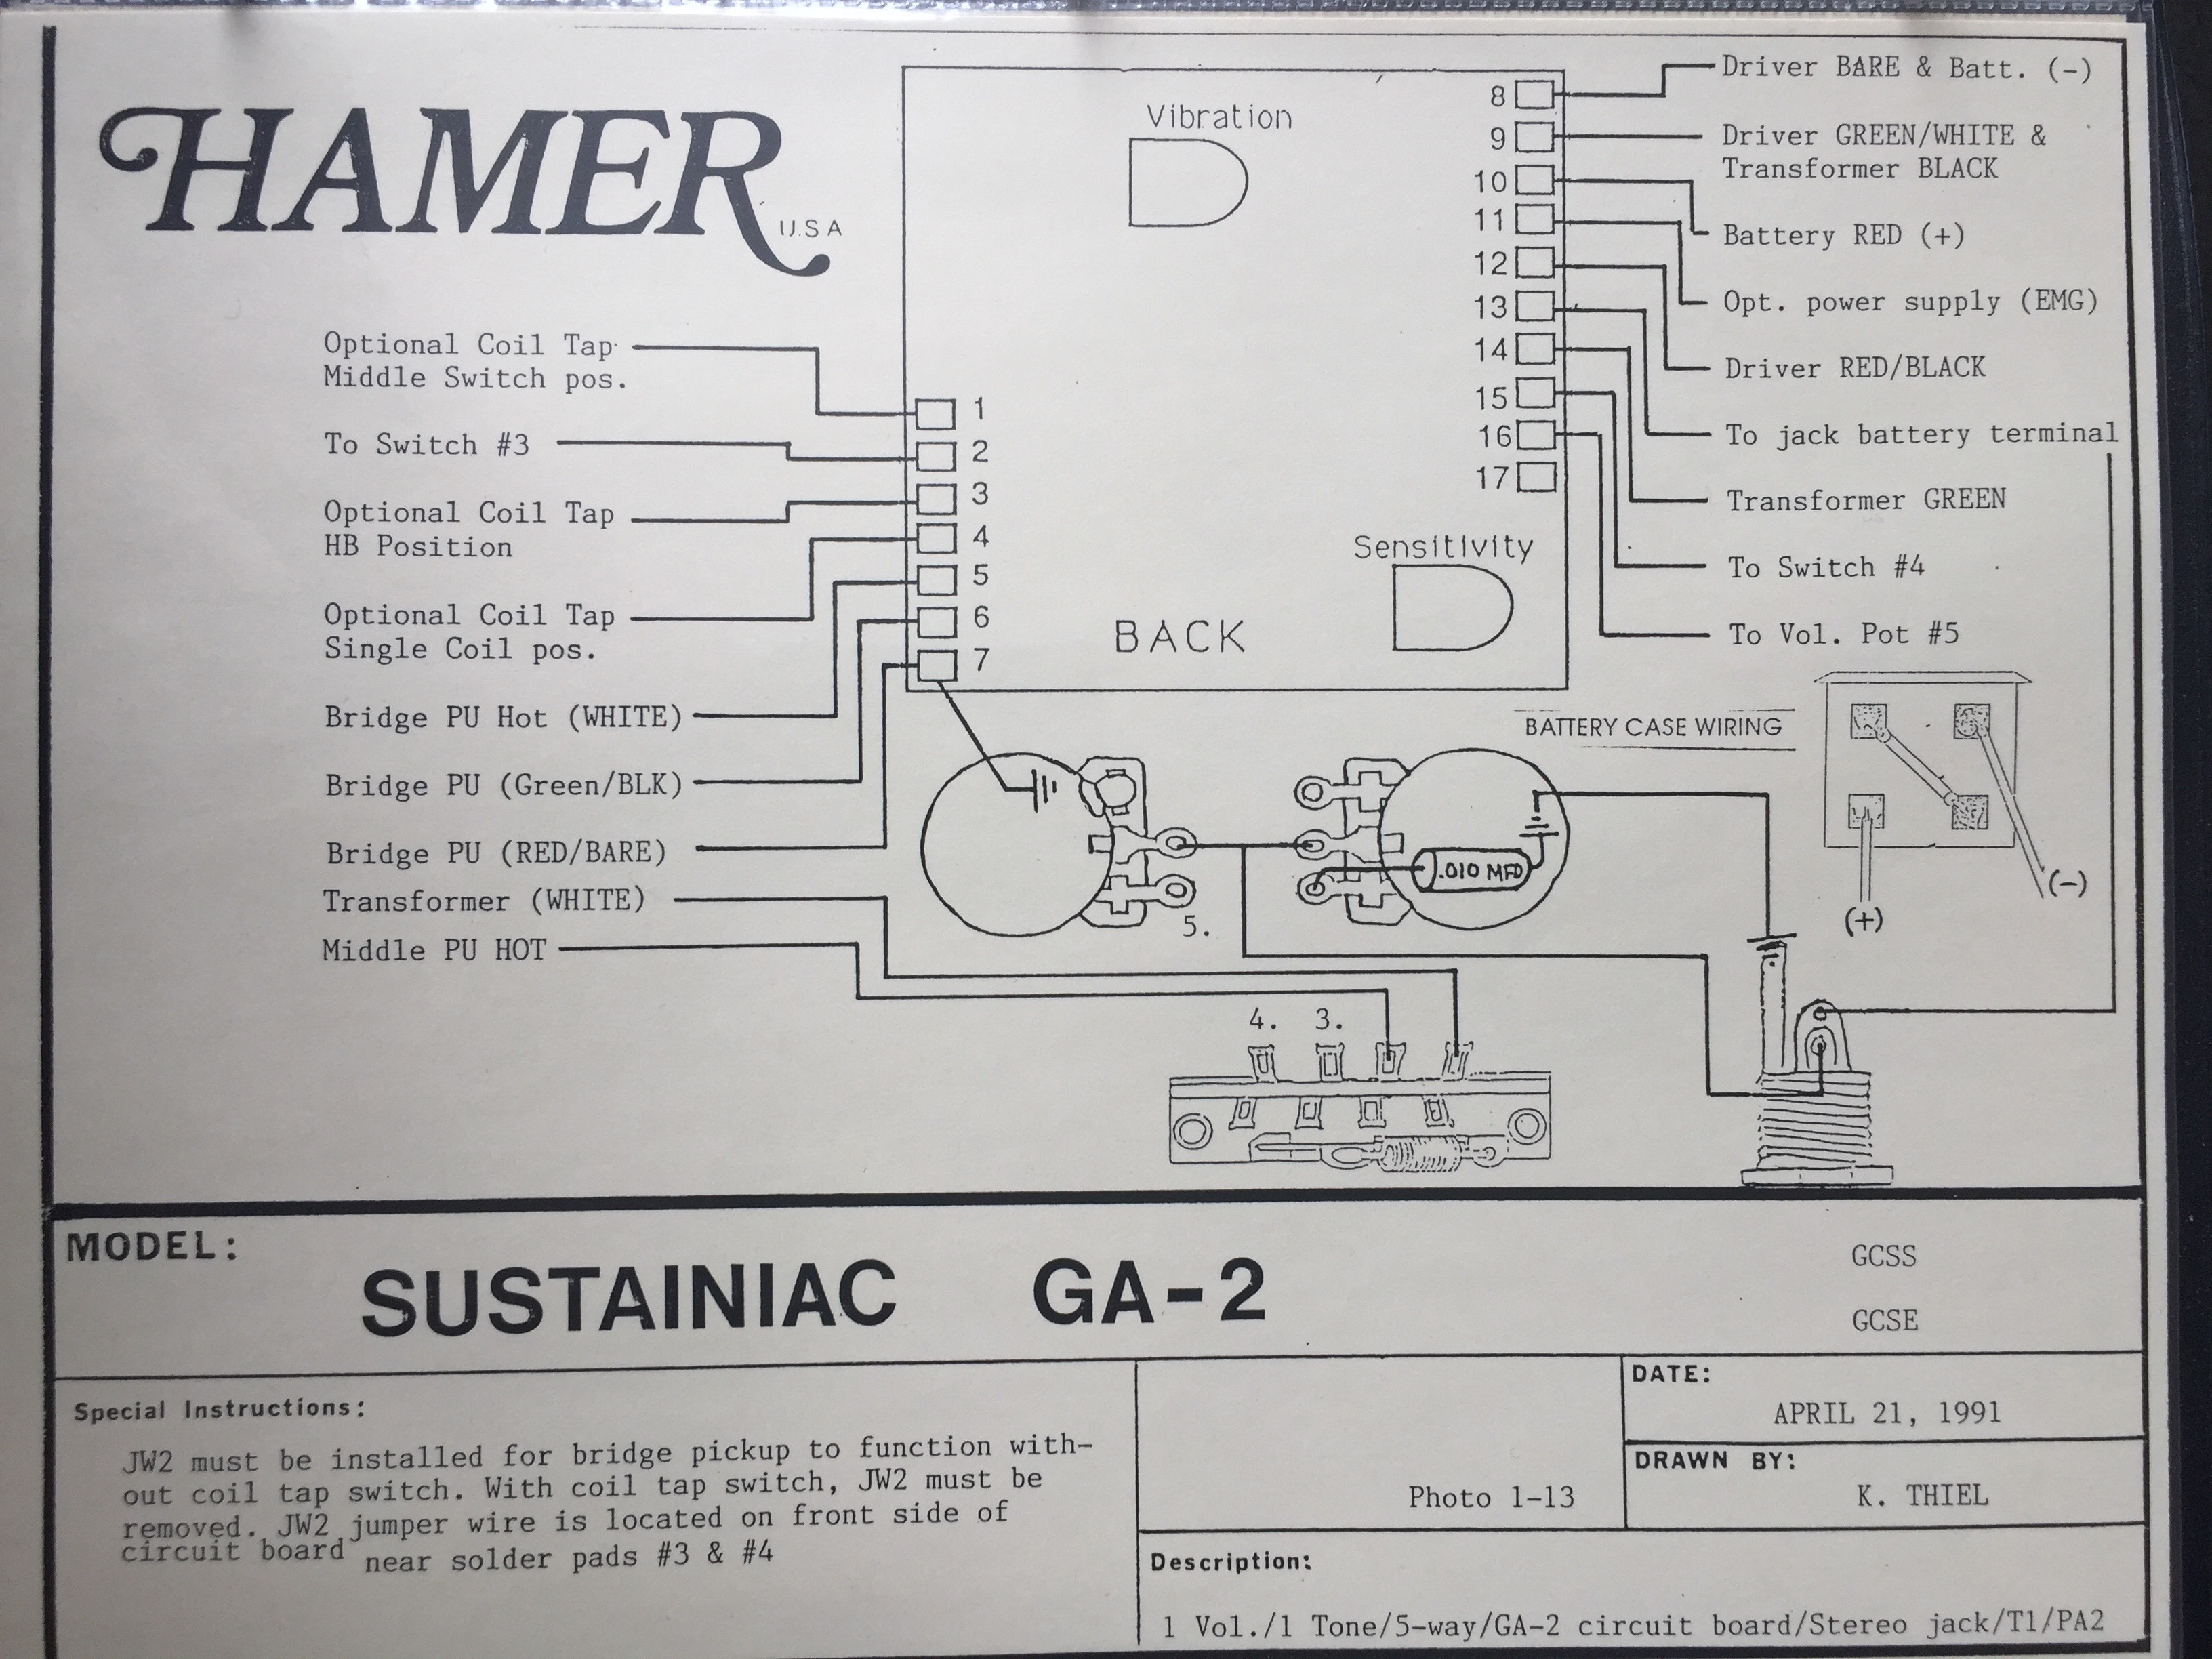 Hamer Guitar Wiring Diagrams | Wiring Diagram | Article Review on hamer guitar made in korea, hamer slammer bass guitar, gibson explorer wiring diagrams, hamer slammer series wiring diagram, gretsch wiring diagrams, suhr wiring diagrams, peavey wiring diagrams,